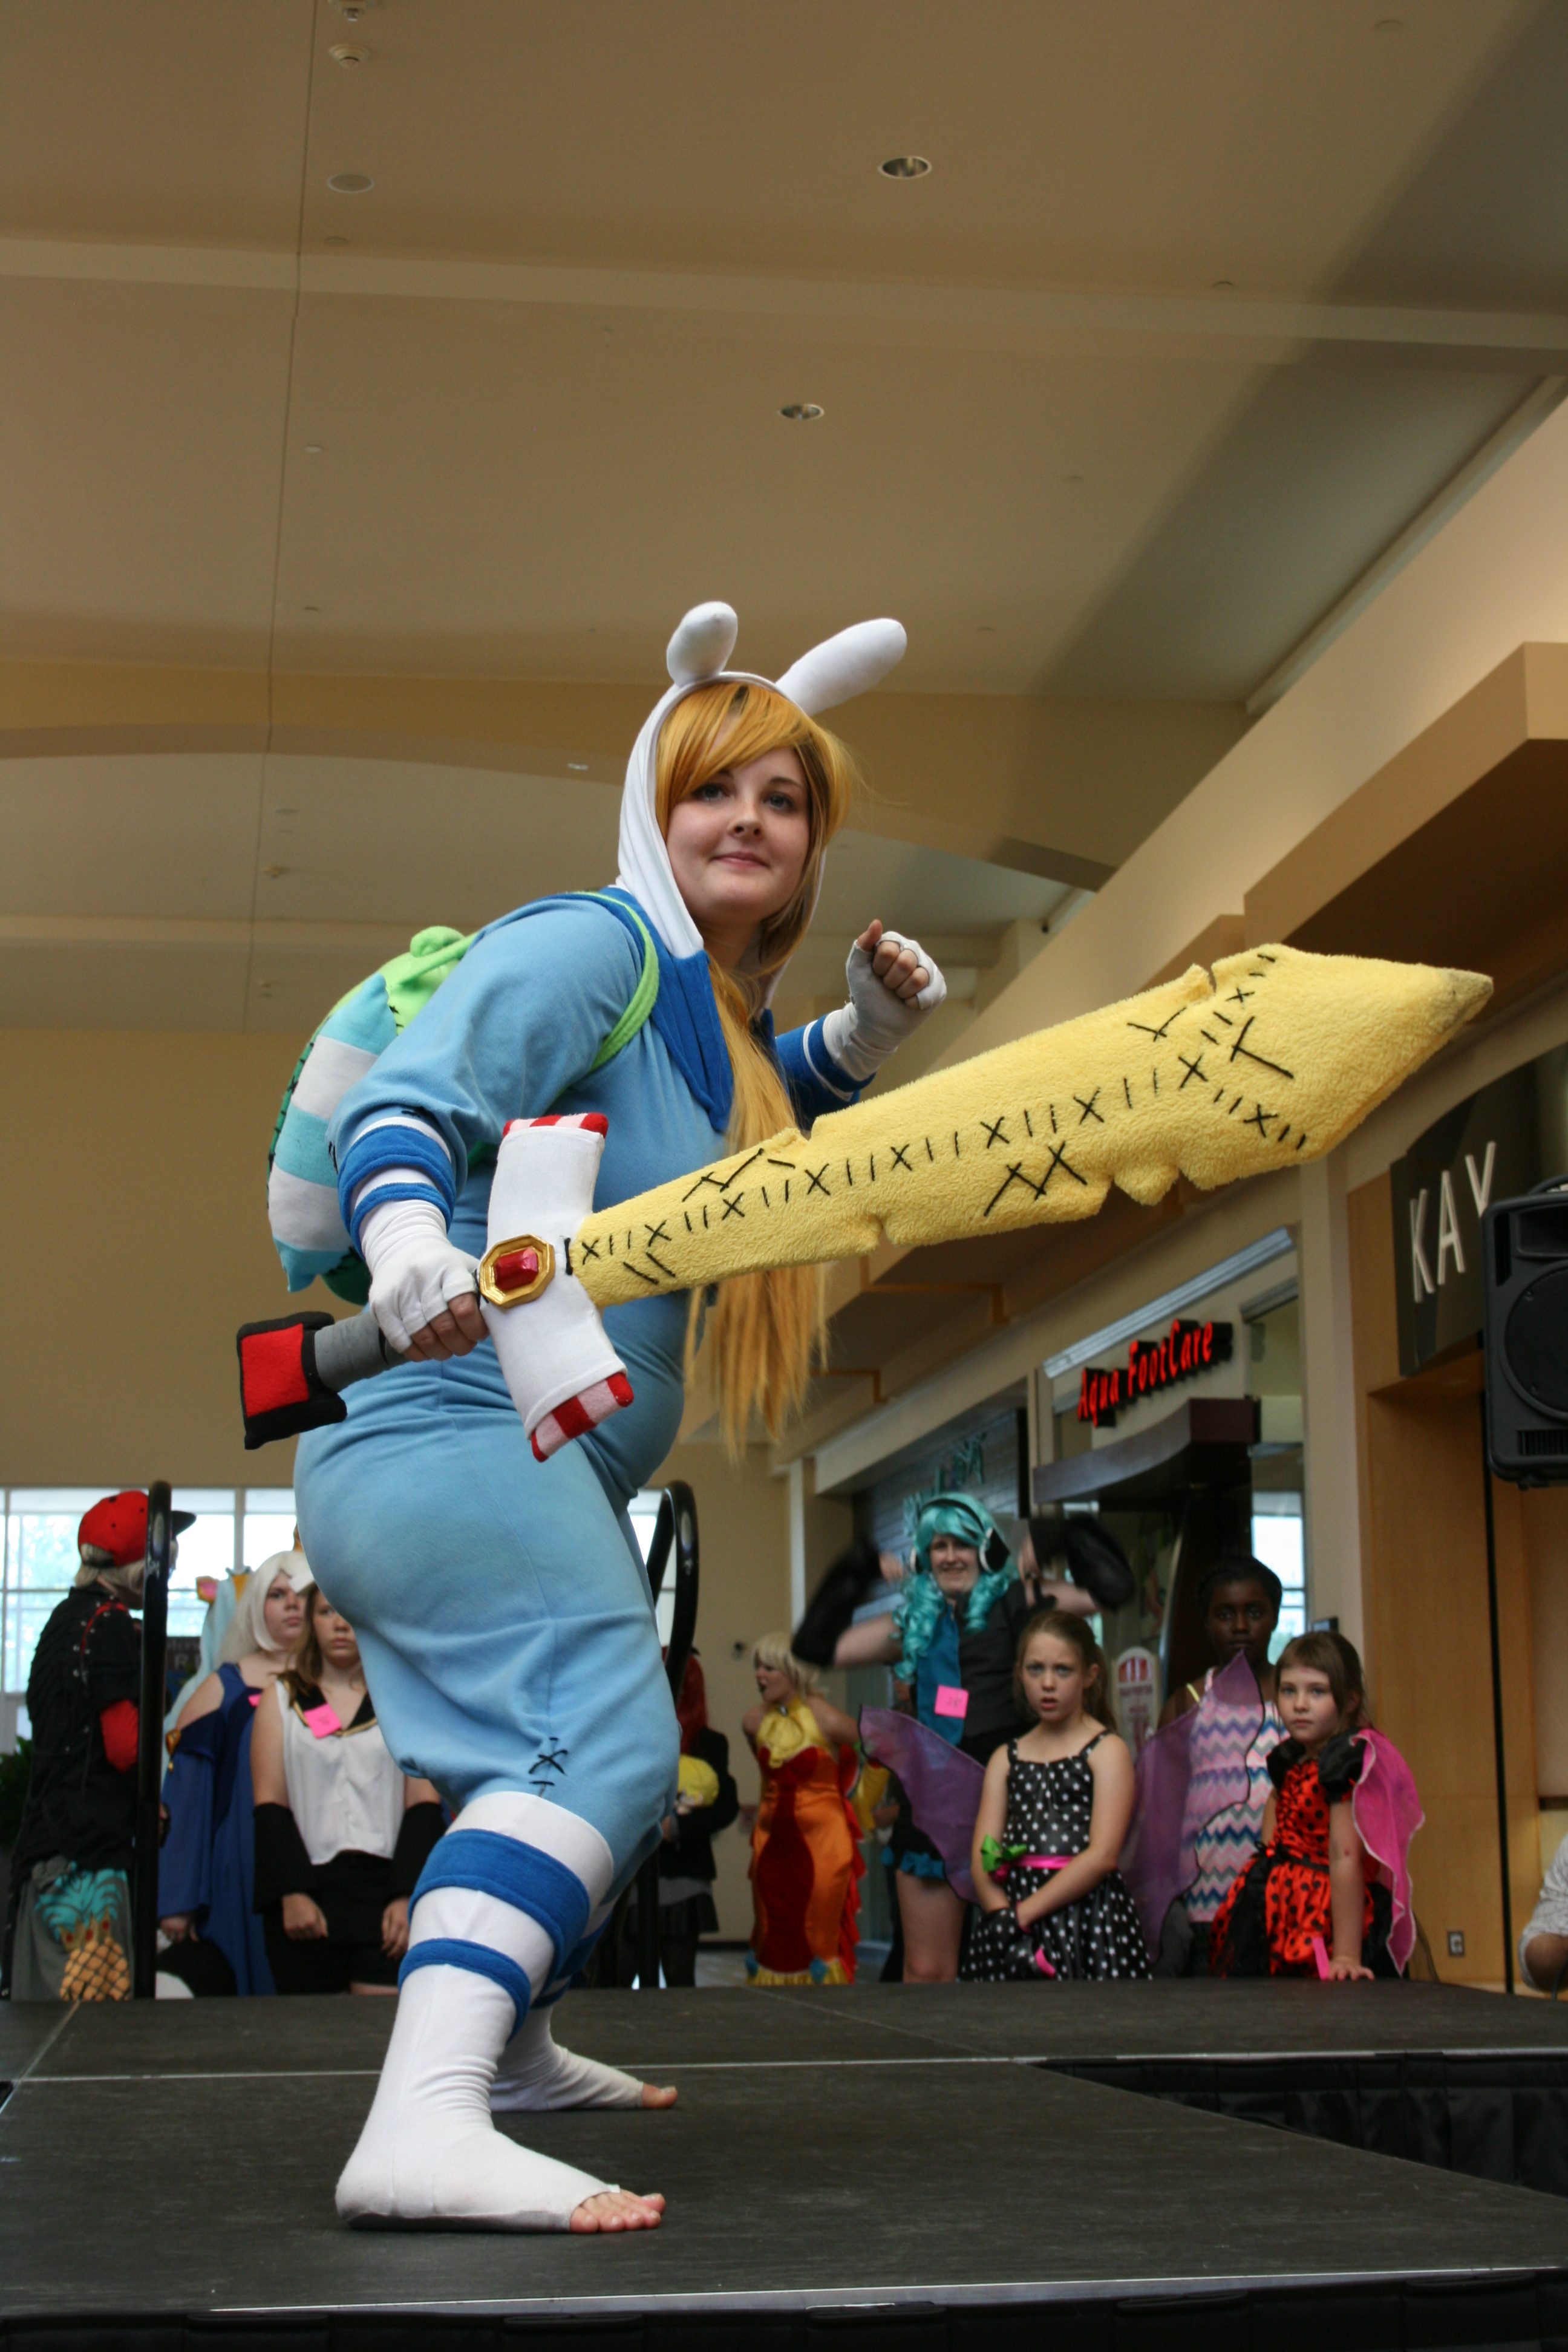 stones river mall and hot topic present anime  u0026 cosplay party  round two